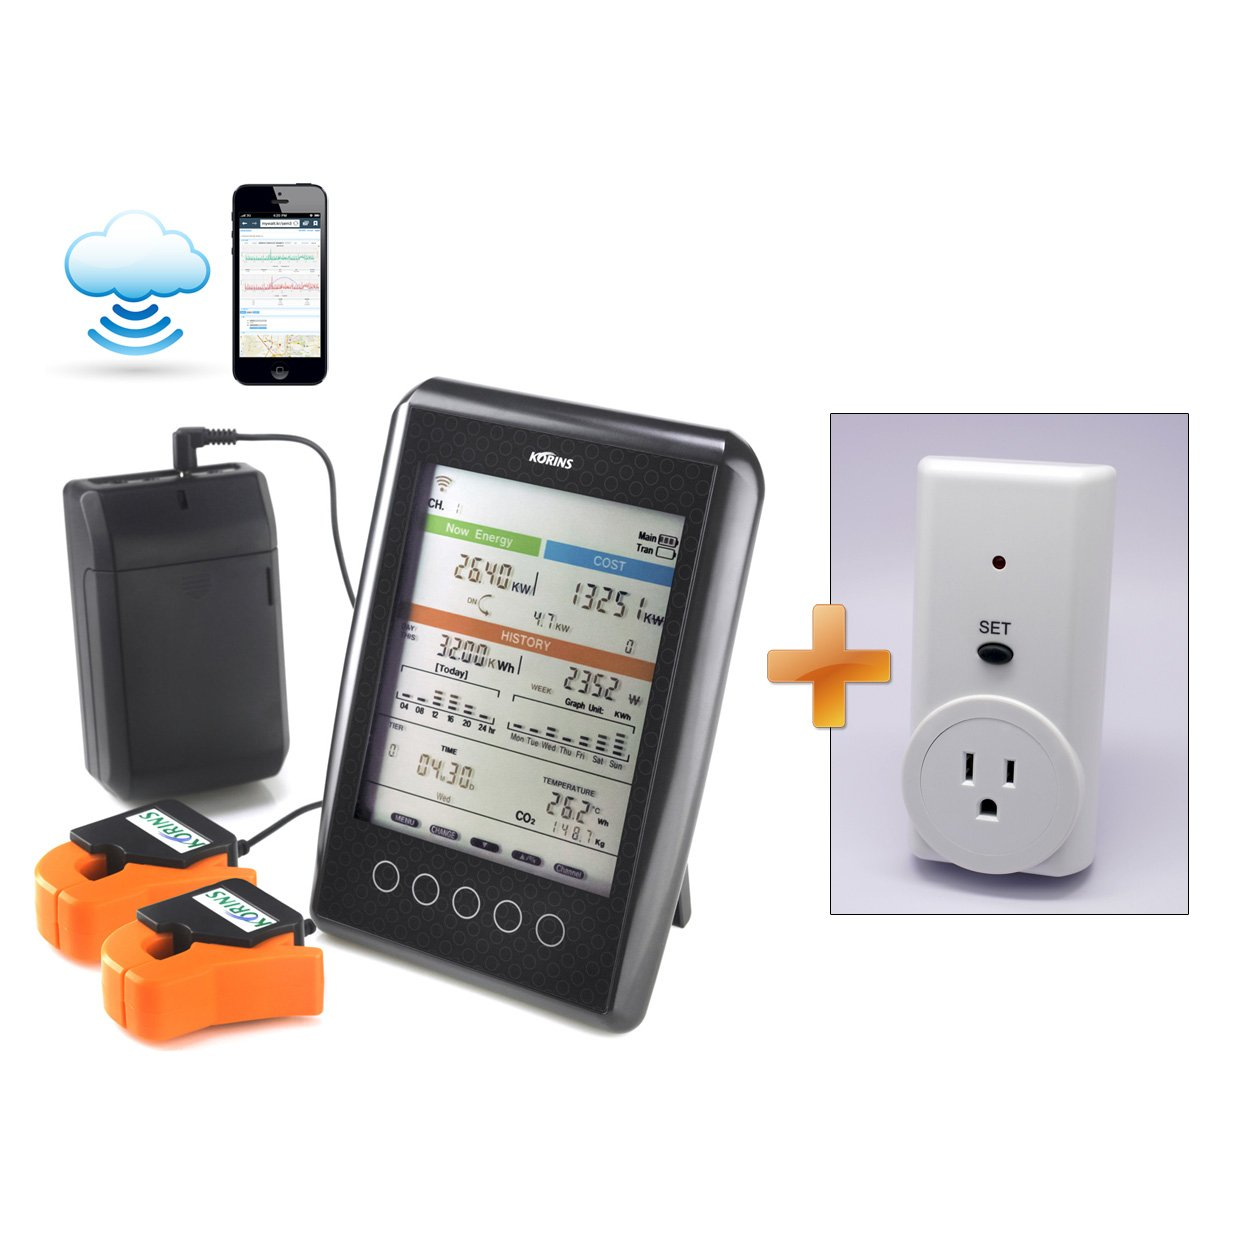 Korins MyWatt 10ch. Wireless Electricity Monitor with Cloud Service, SEM3110B2 for USA